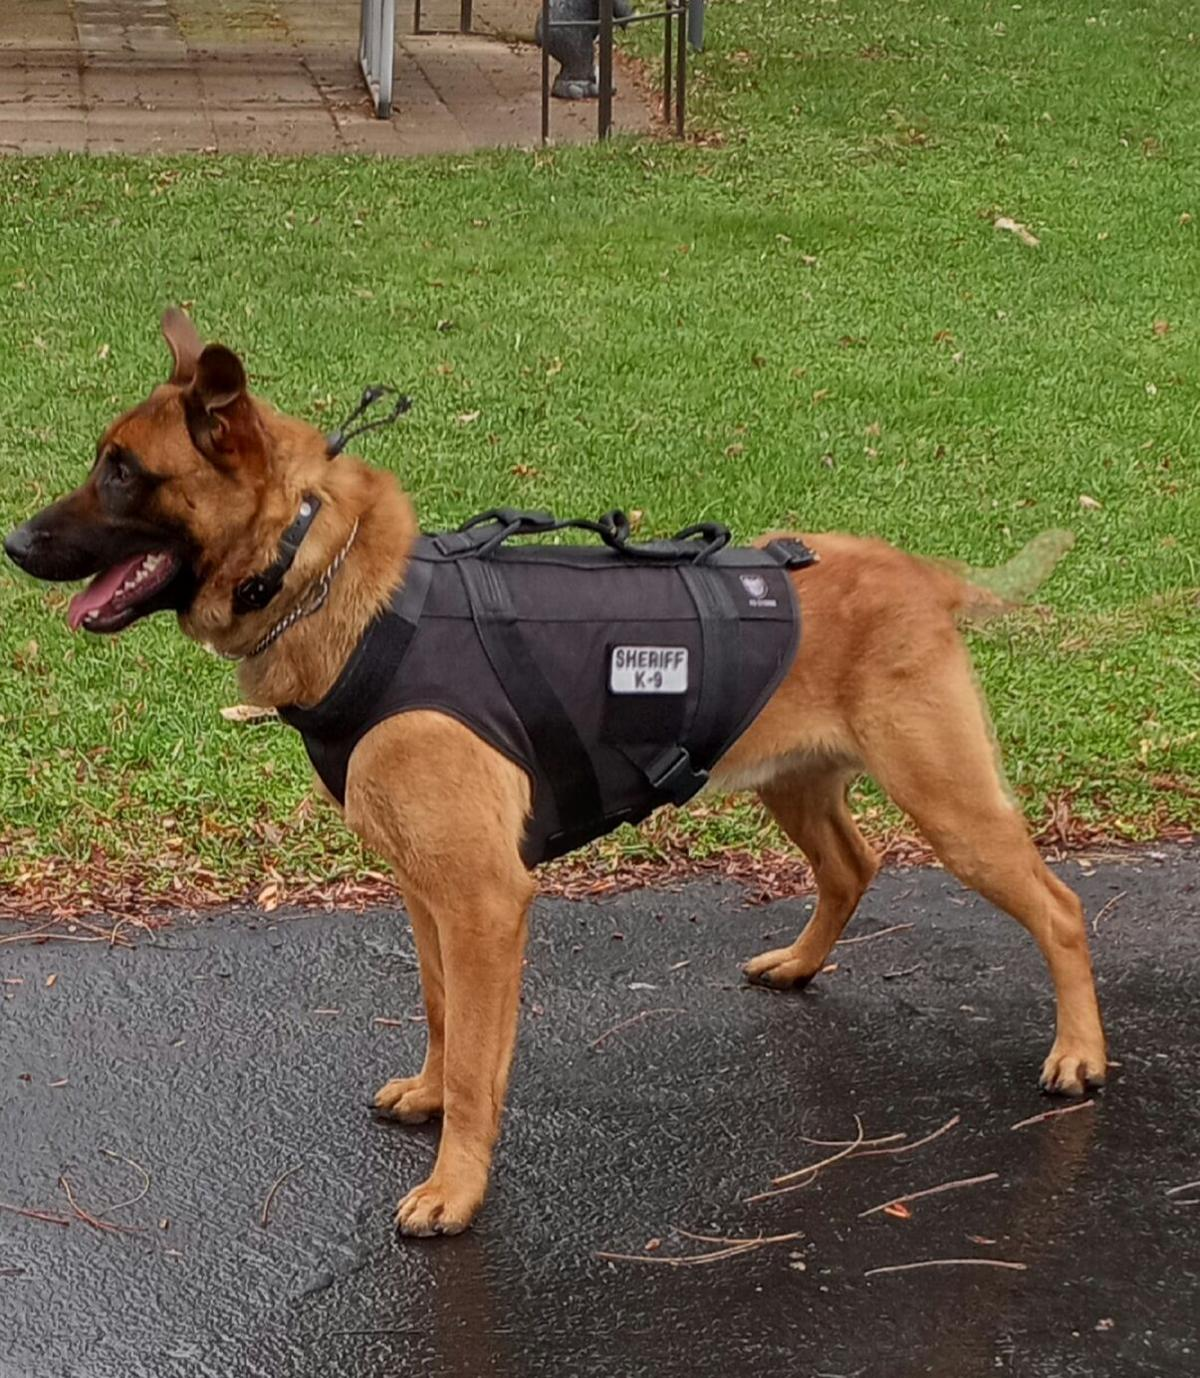 St. Croix County K-9 Ares